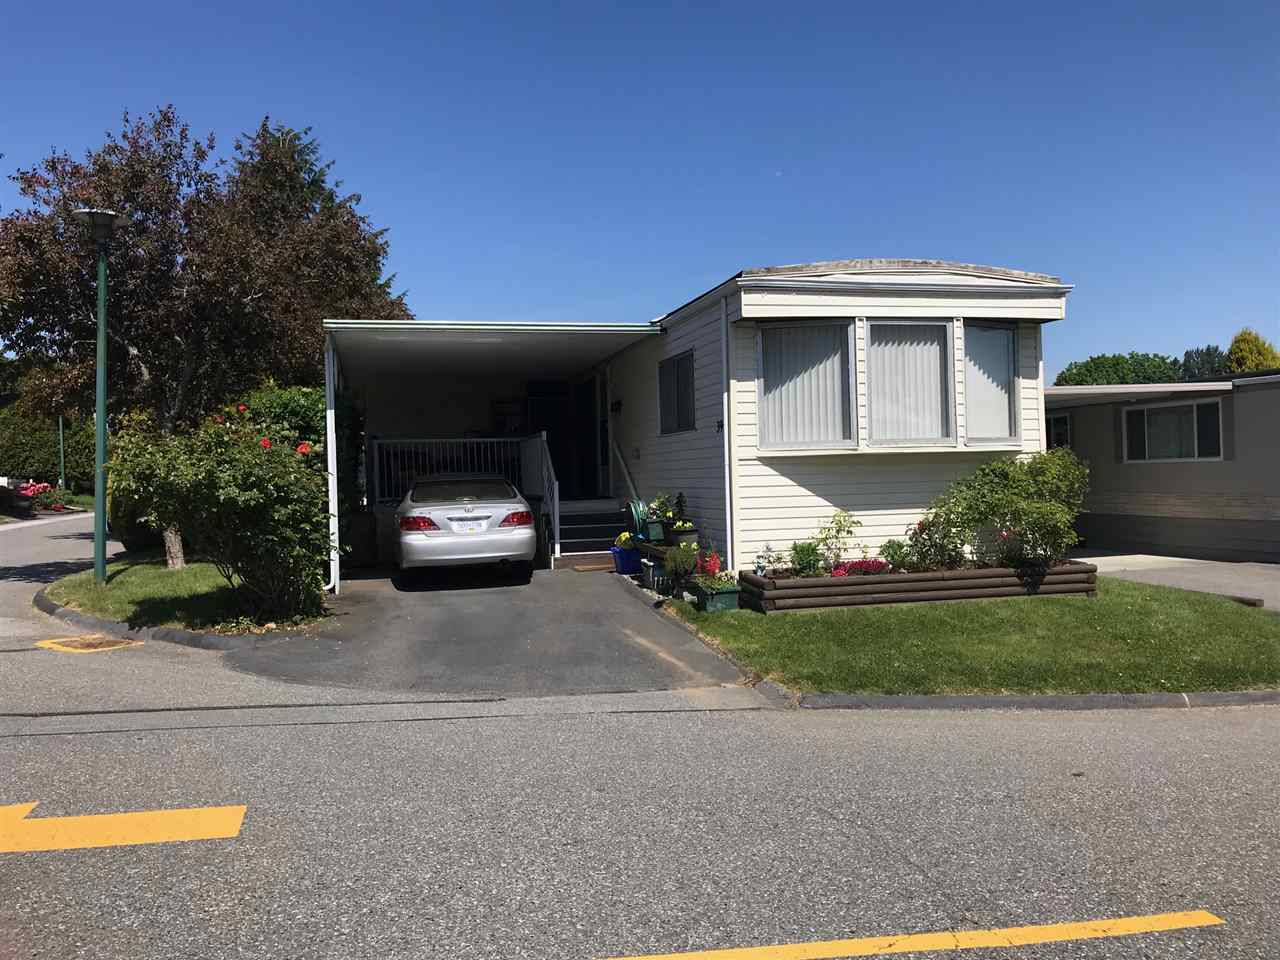 Main Photo: 39 1840 160 Street in Surrey: King George Corridor Manufactured Home for sale (South Surrey White Rock)  : MLS®# R2271131